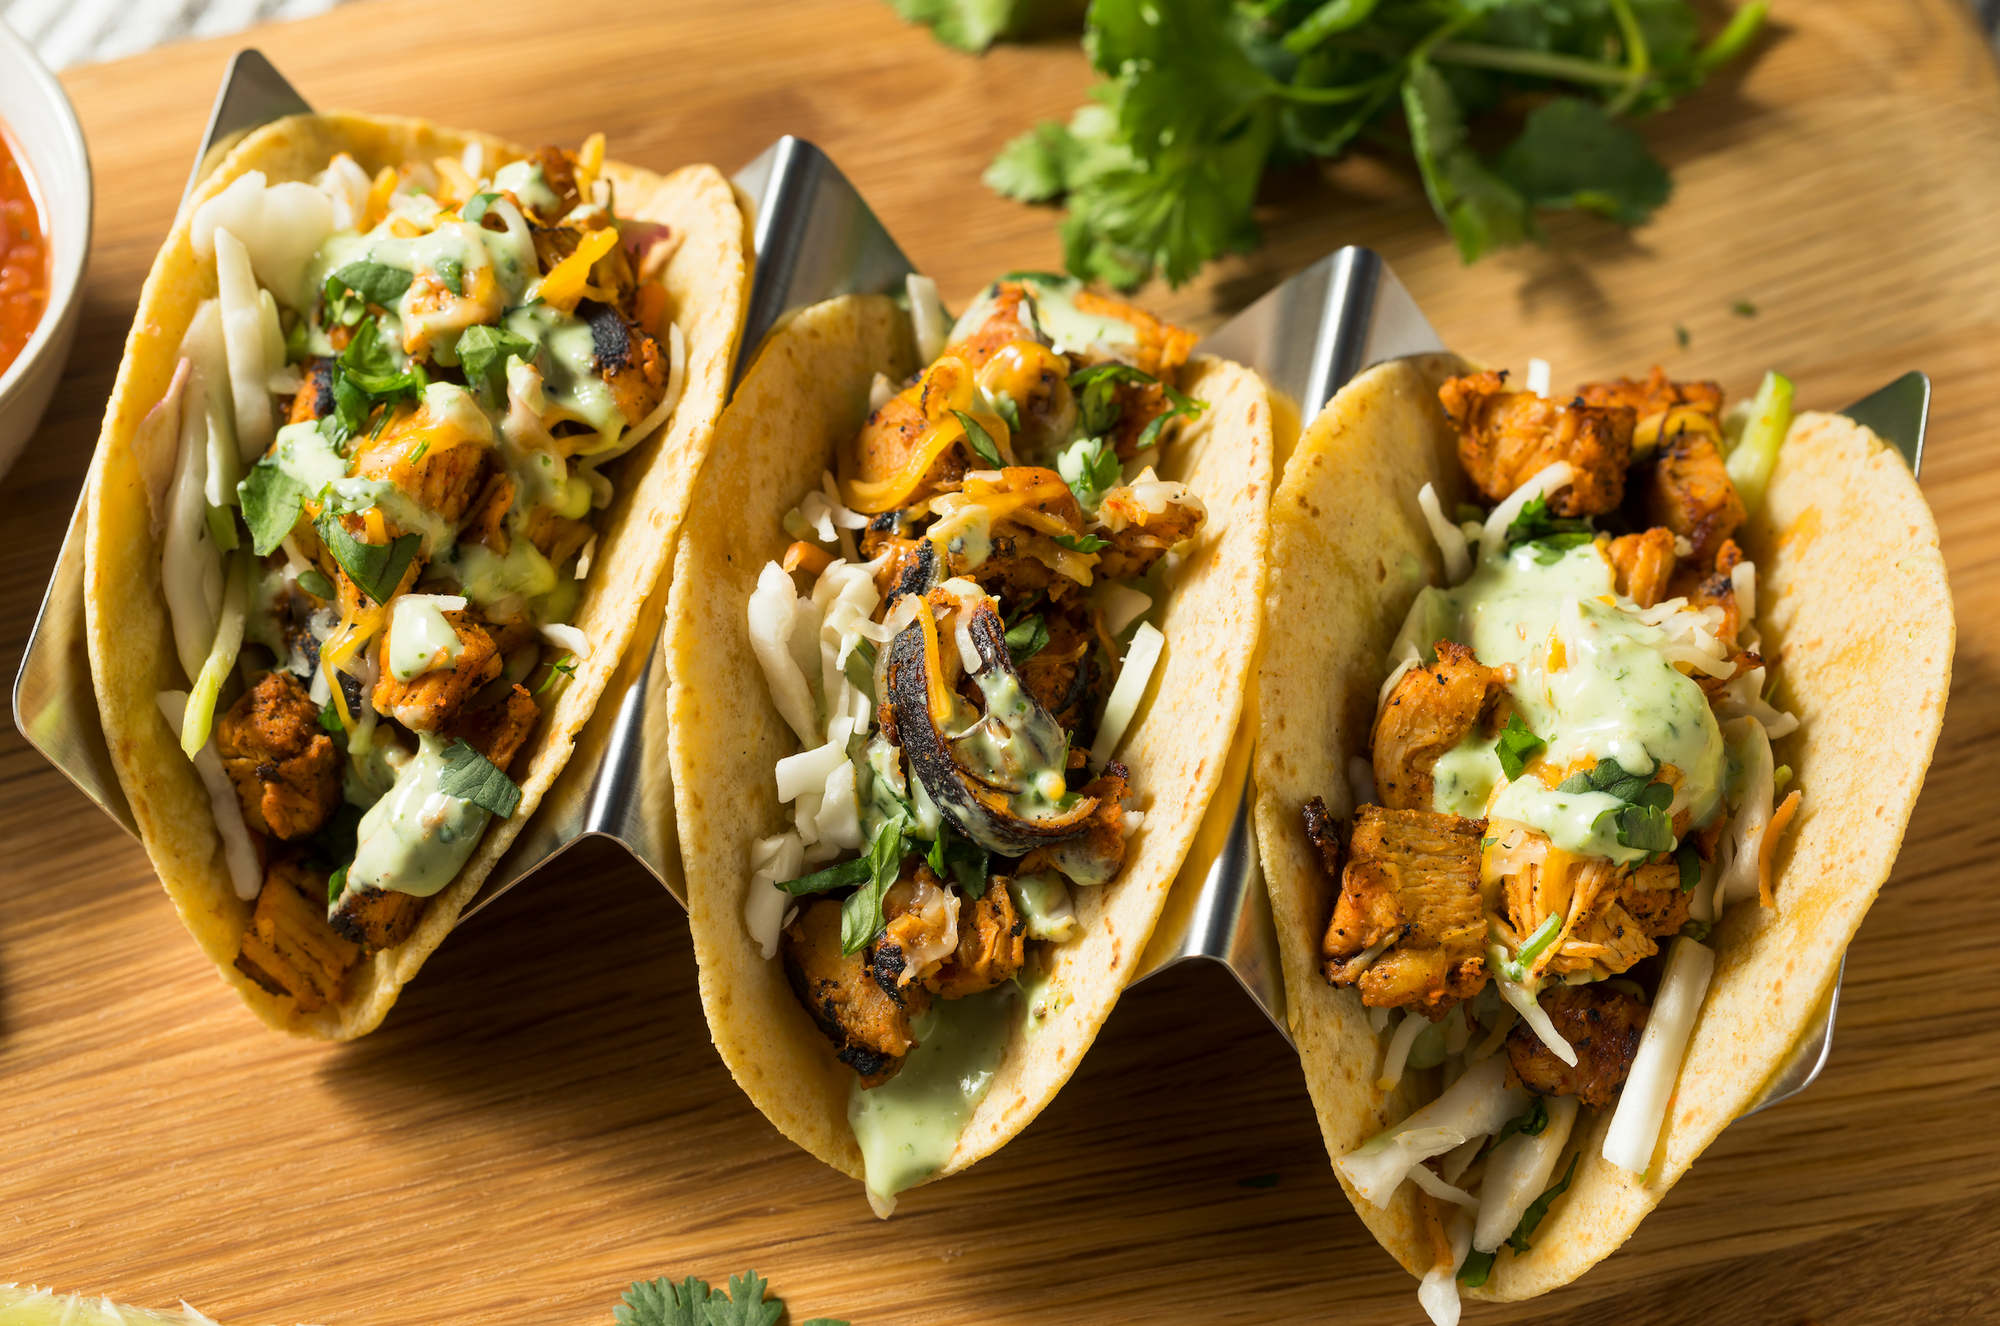 Authentic Chicken Tacos with Mint Salsa